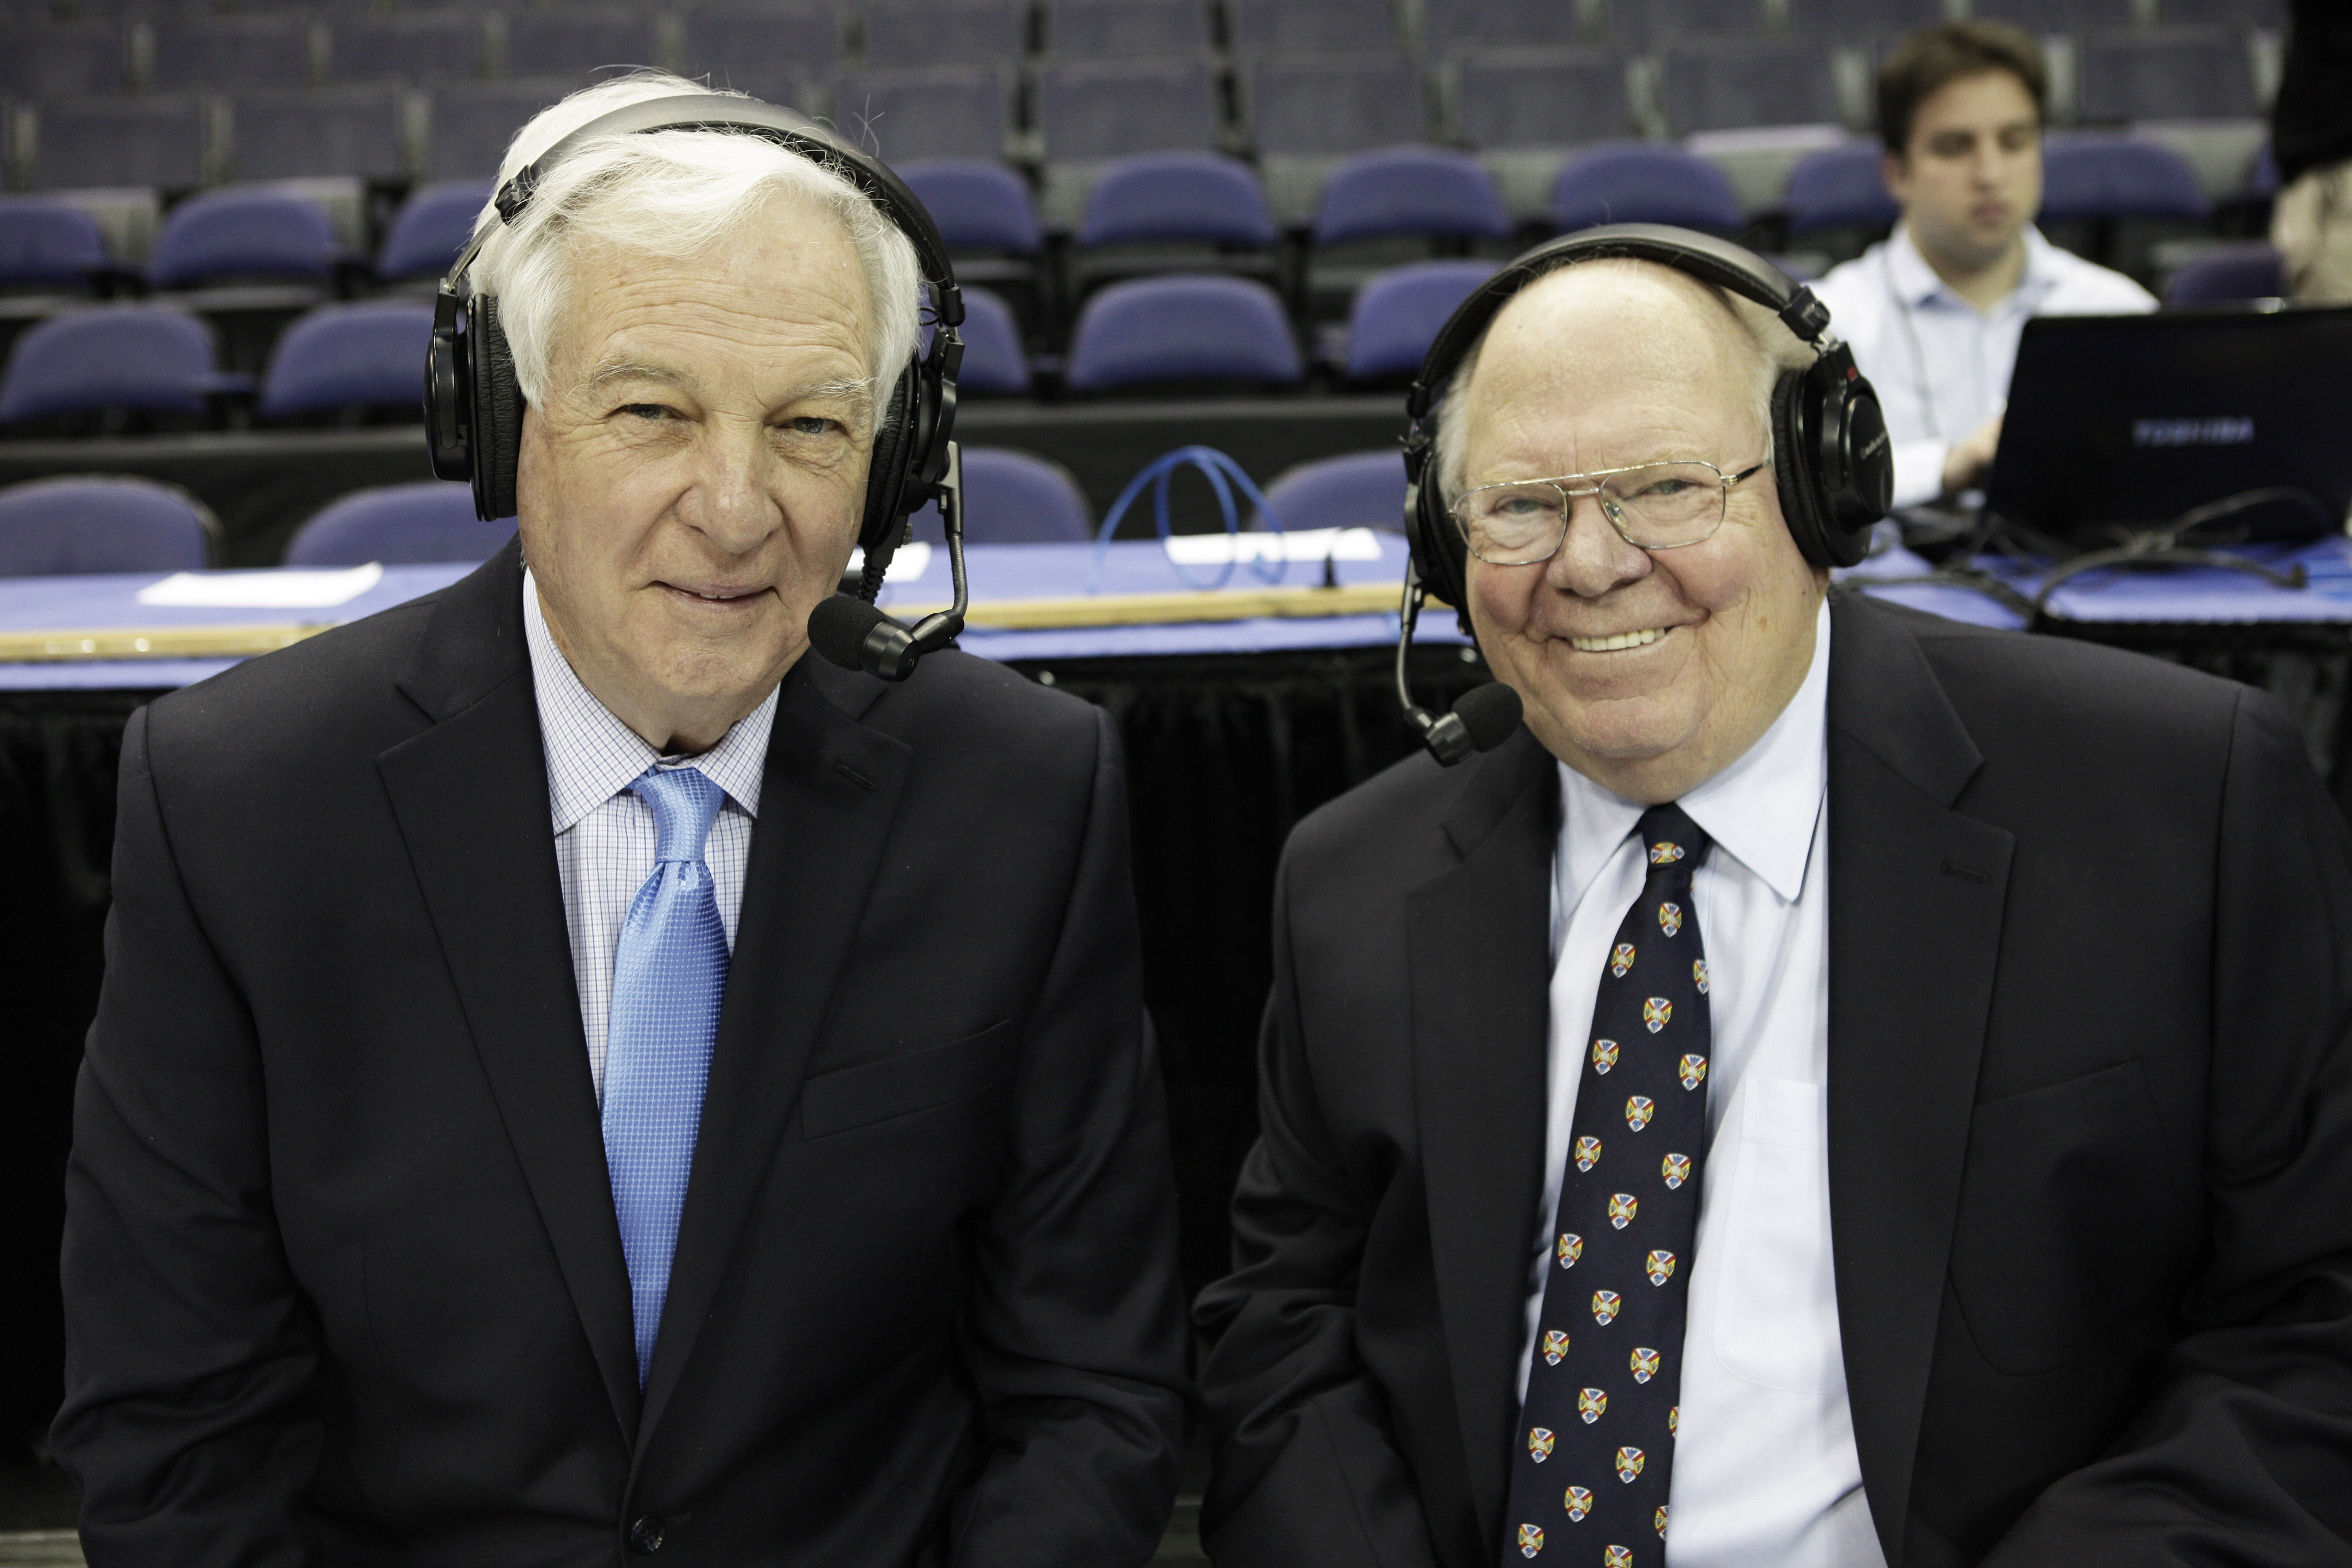 Bill Raftery, left, and Verne Lundquist will broadcast the games from First Niagara Center for CBS and TBS.